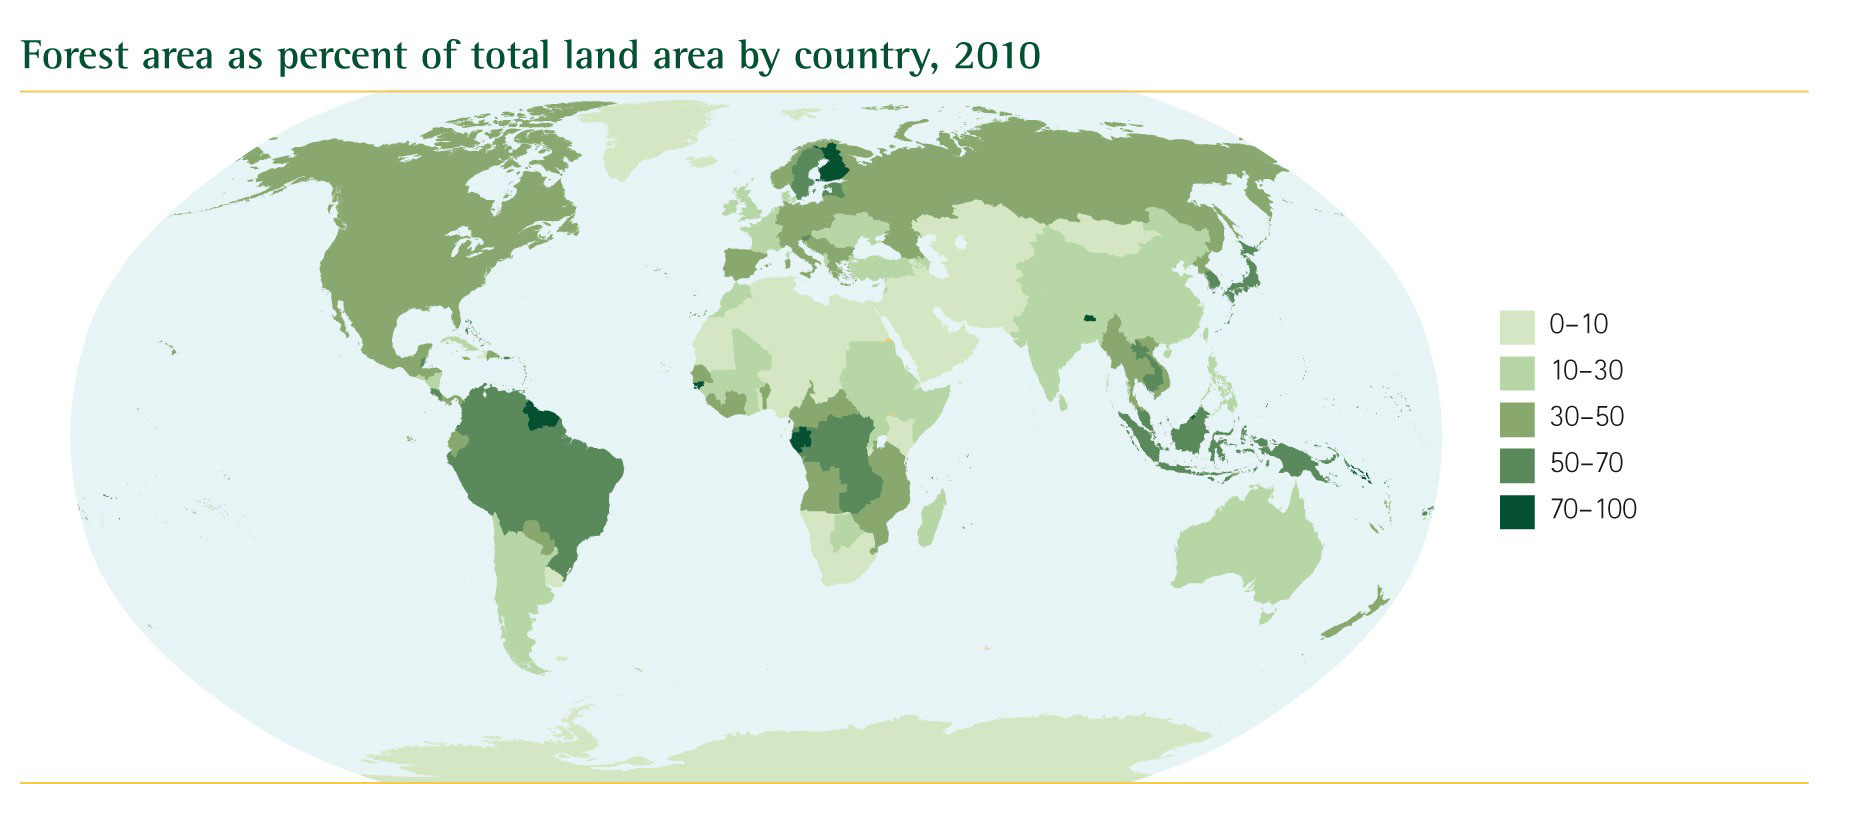 Lfccs and climate change maps map of the forest area percentage in the world based upon the countries fao 2010 gumiabroncs Gallery